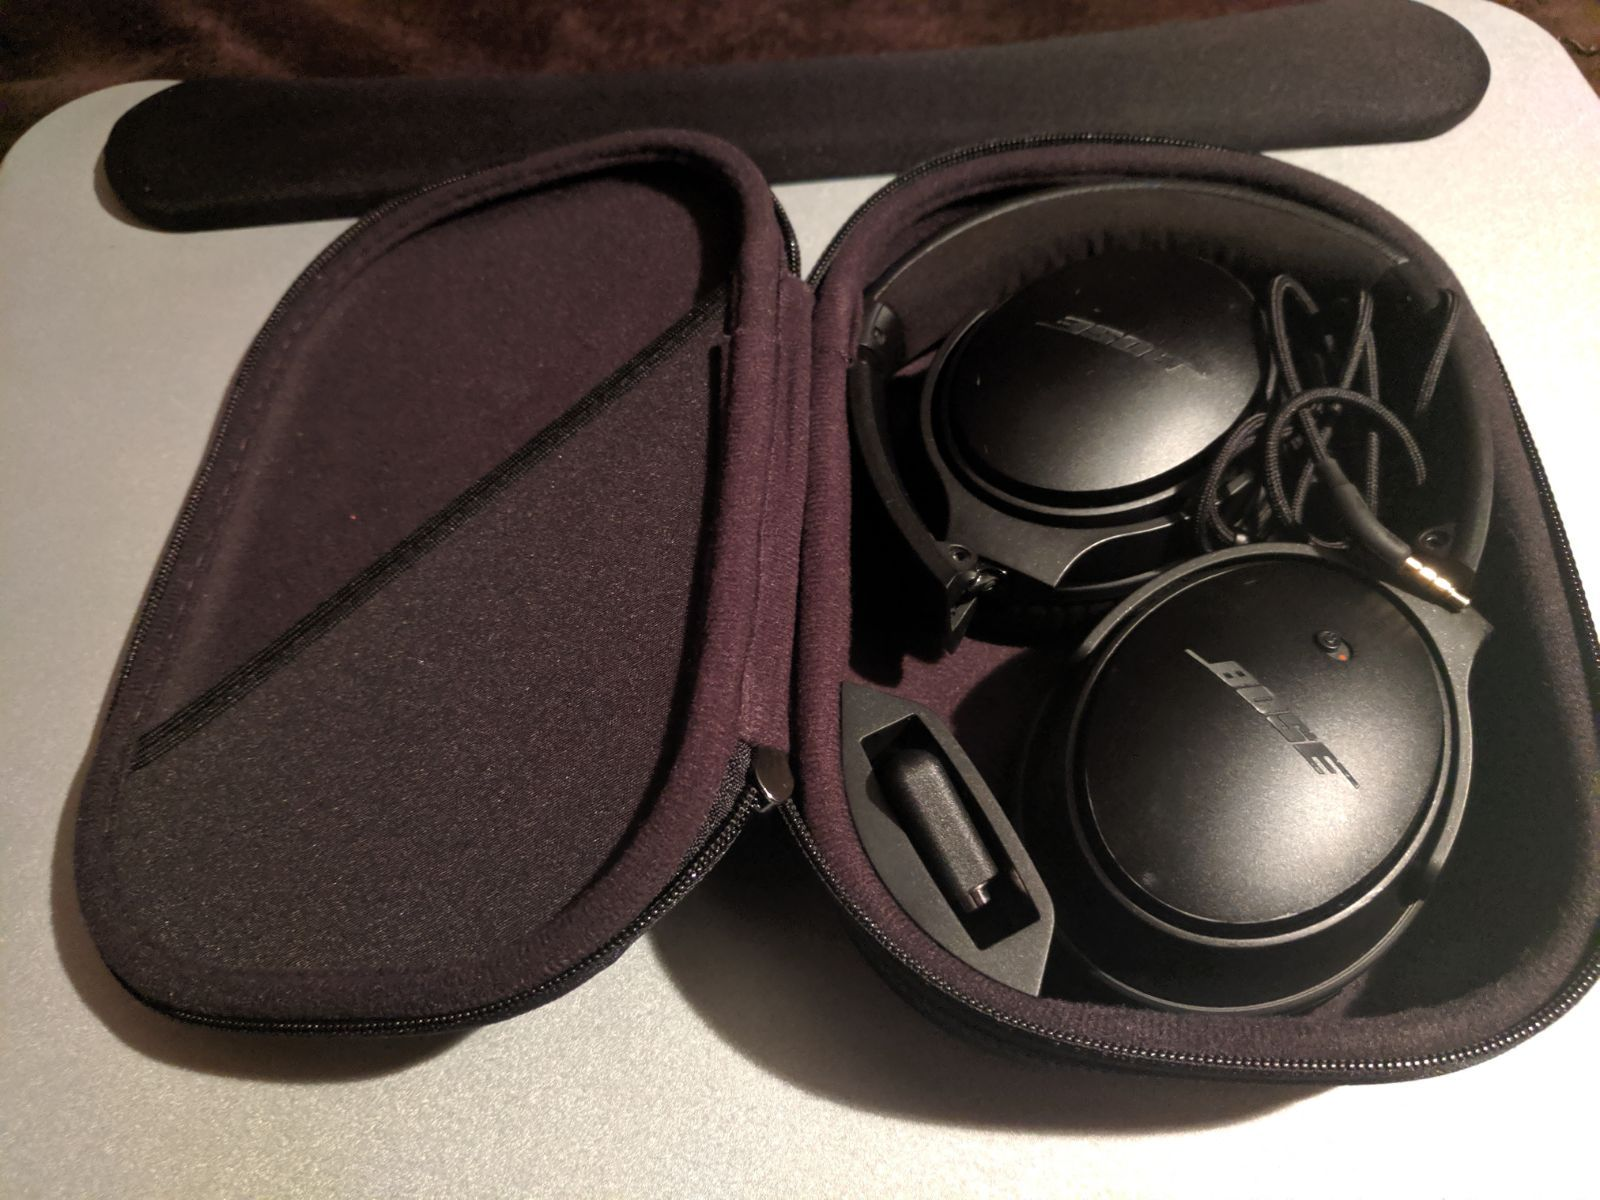 Bose Quietcomfort Qc25 Noise Cancelling Headphones Black For Music And Calls With Apple And Android Black Headphones Noise Cancelling Headphones Headphones